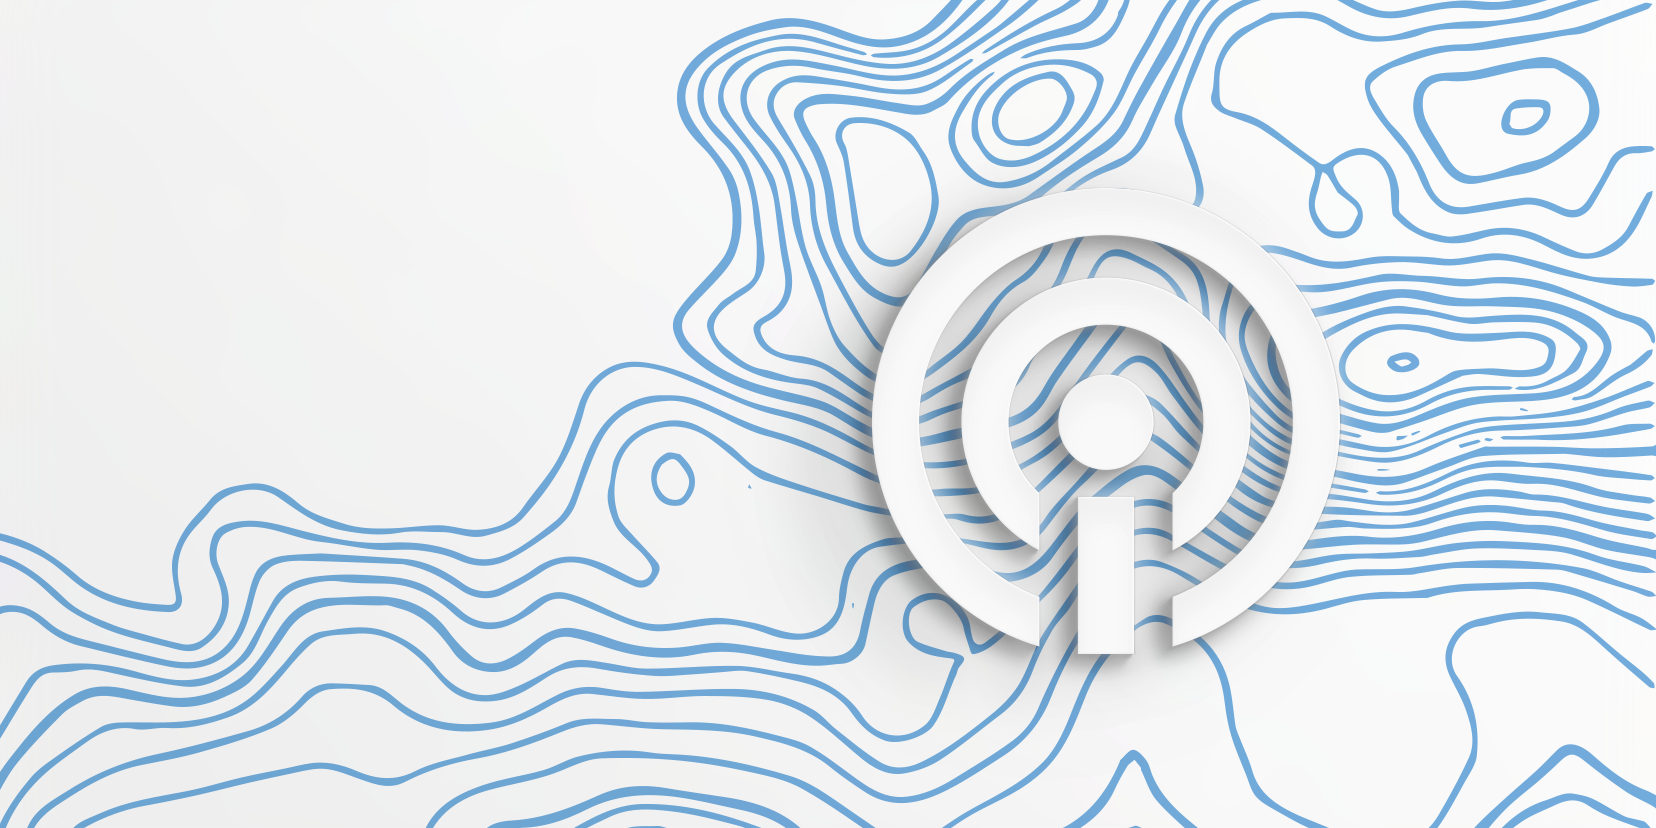 White Impact Institute icon over blue topography lines on a white background